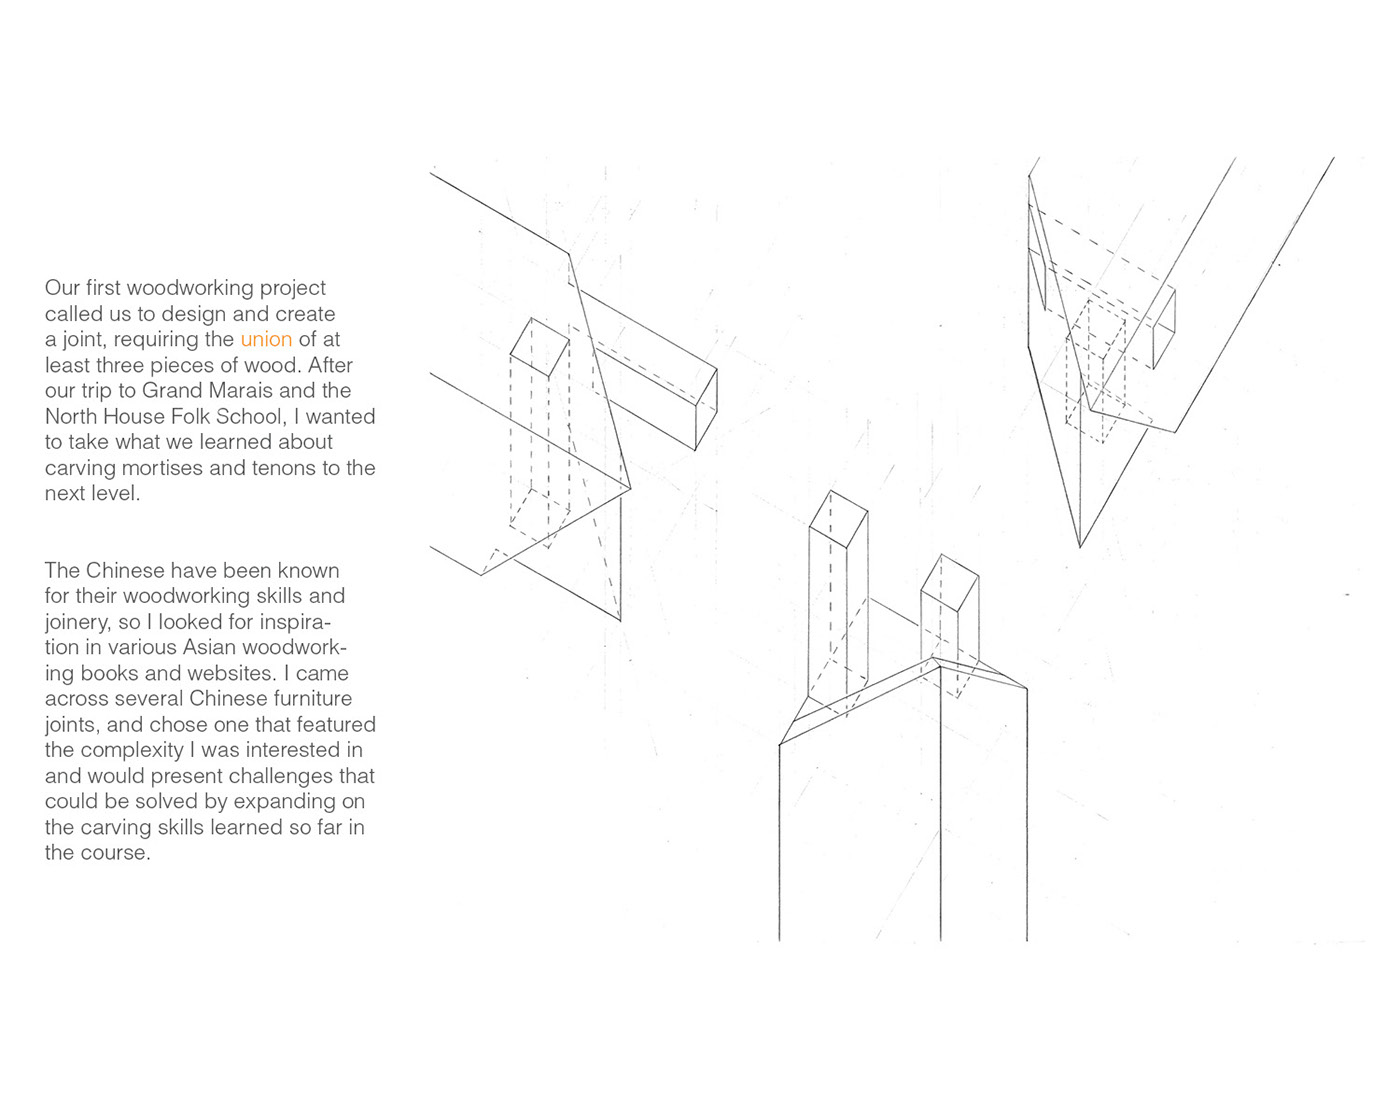 Wood Joinery and Systems: from the Hand to the Machine on